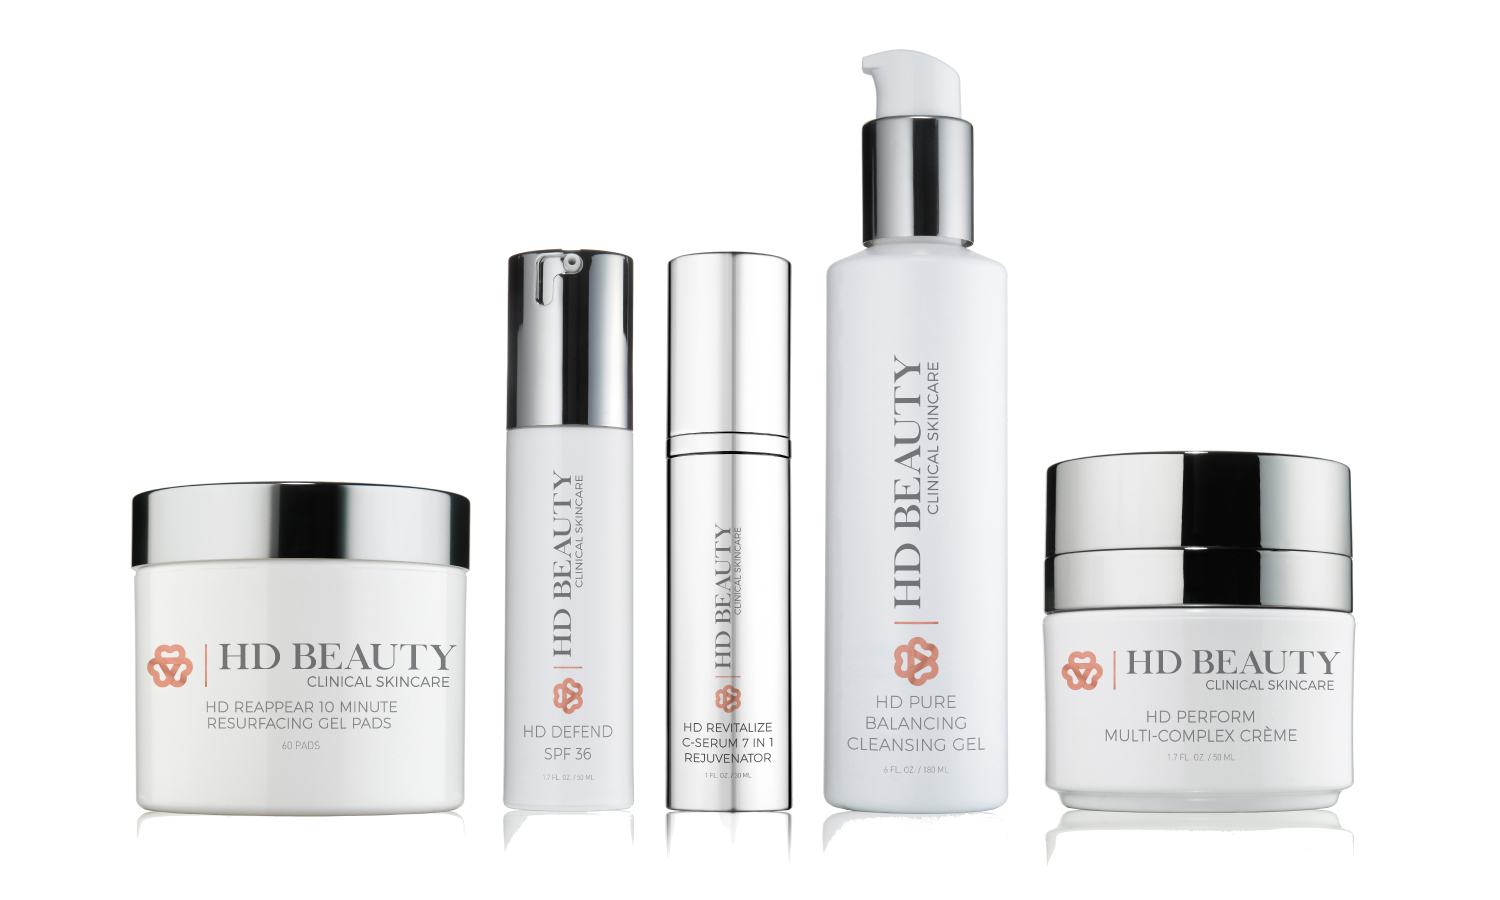 Lorasaysso Hd Beauty Find Out Your Skin Care Type And More